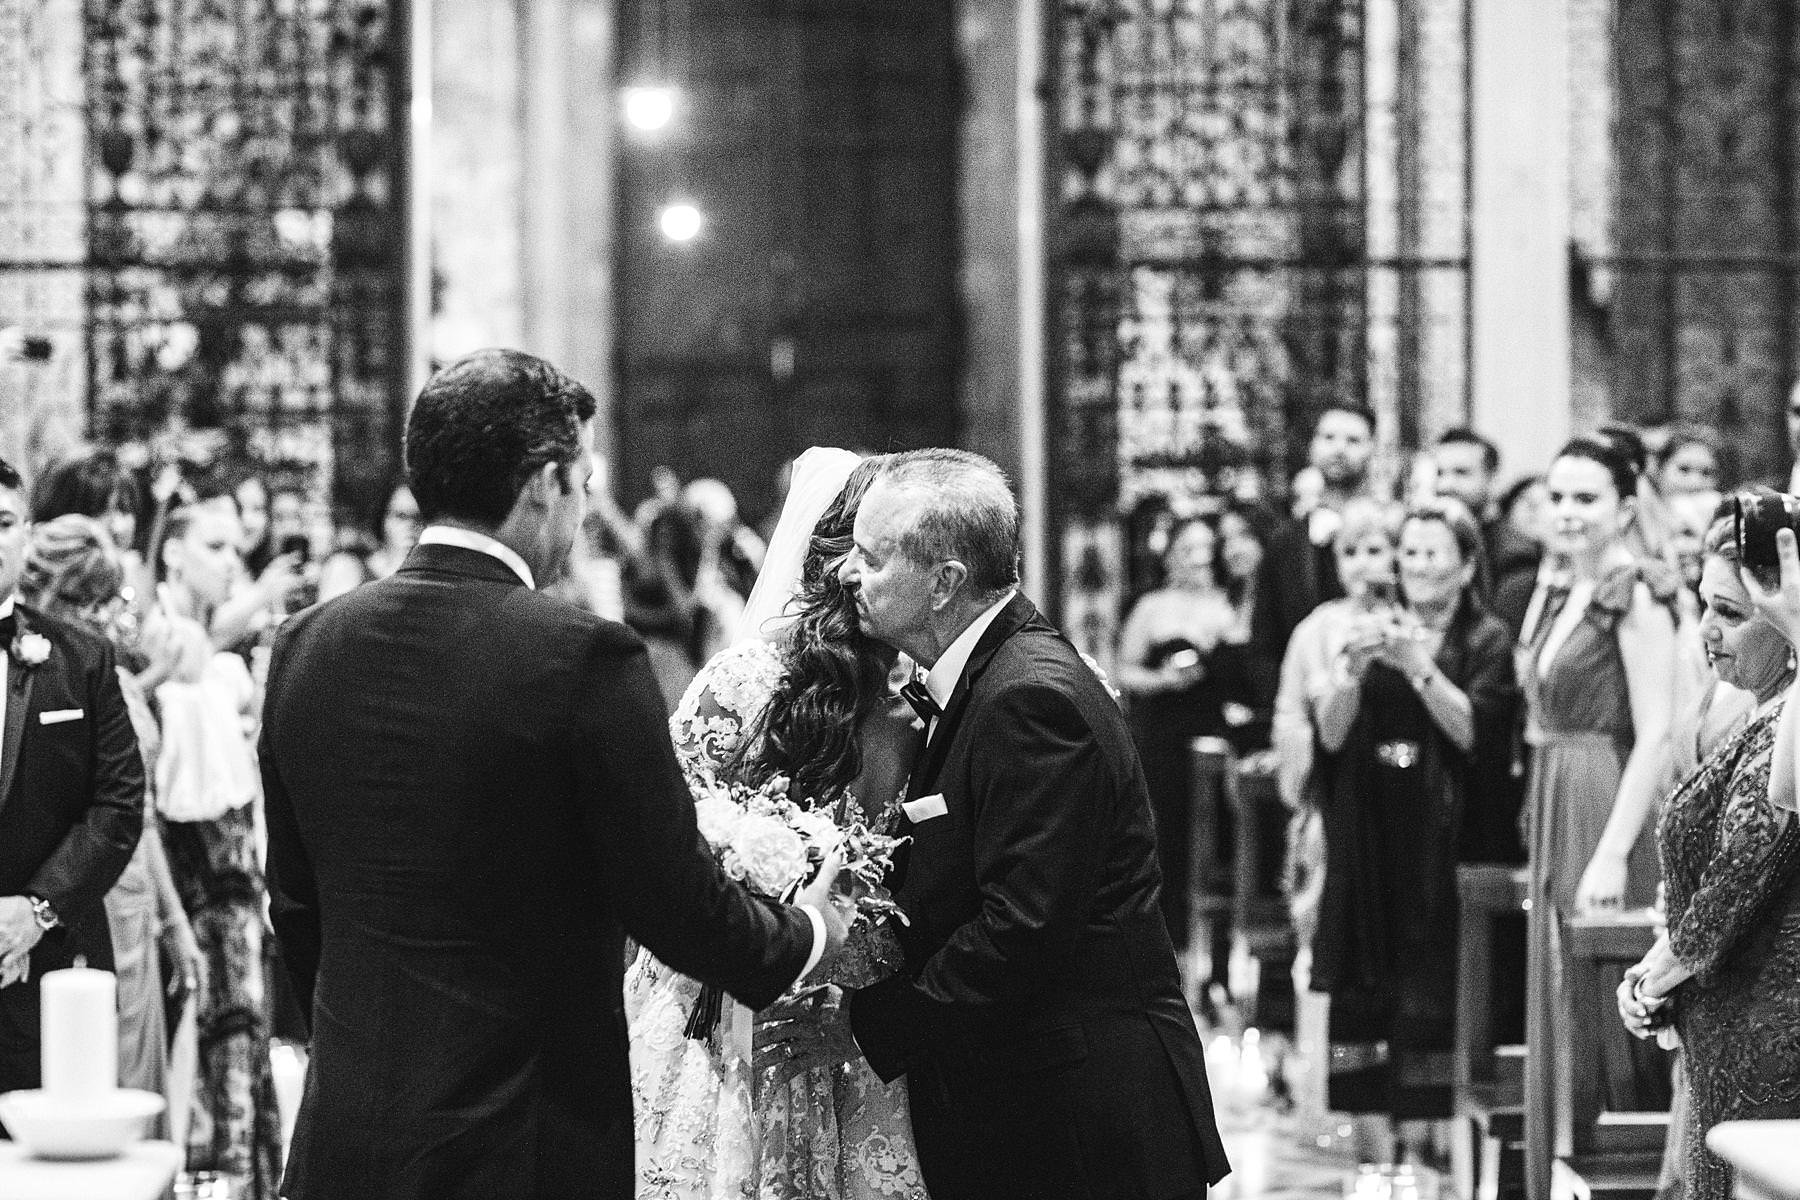 Emotional moment during wedding ceremony in the Arezzo Cathedral